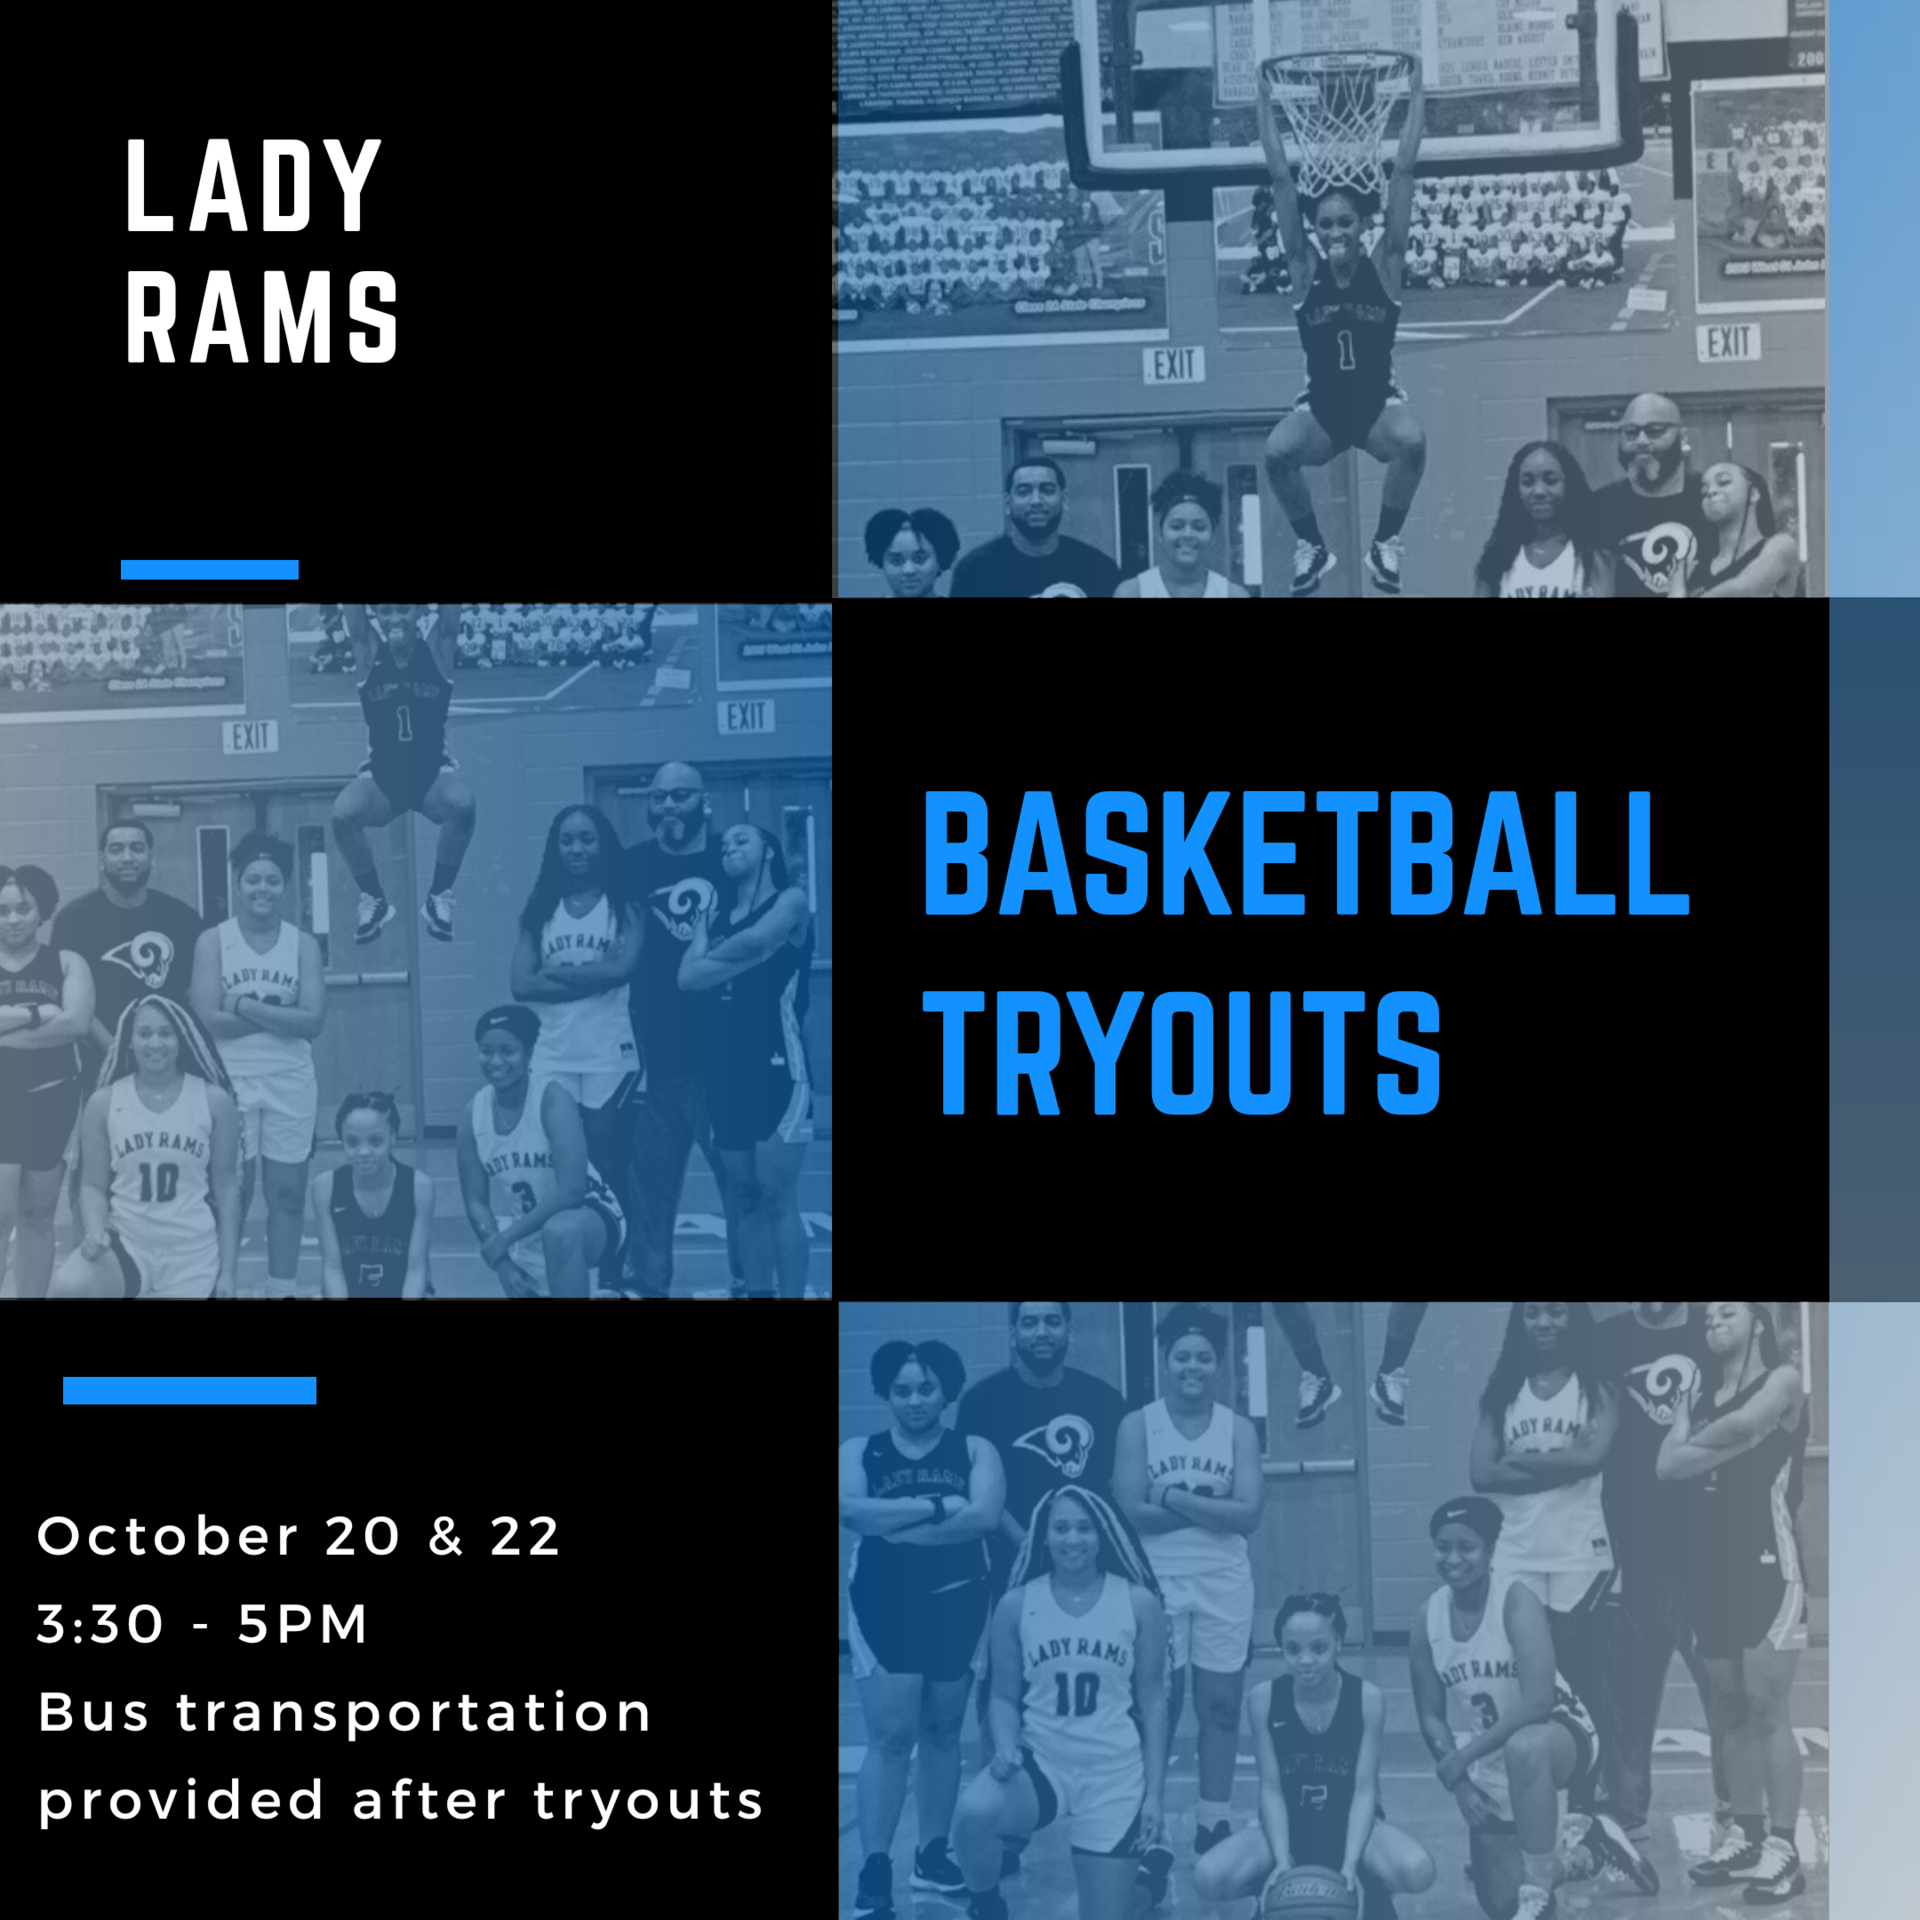 basketball tryouts flyer 2020